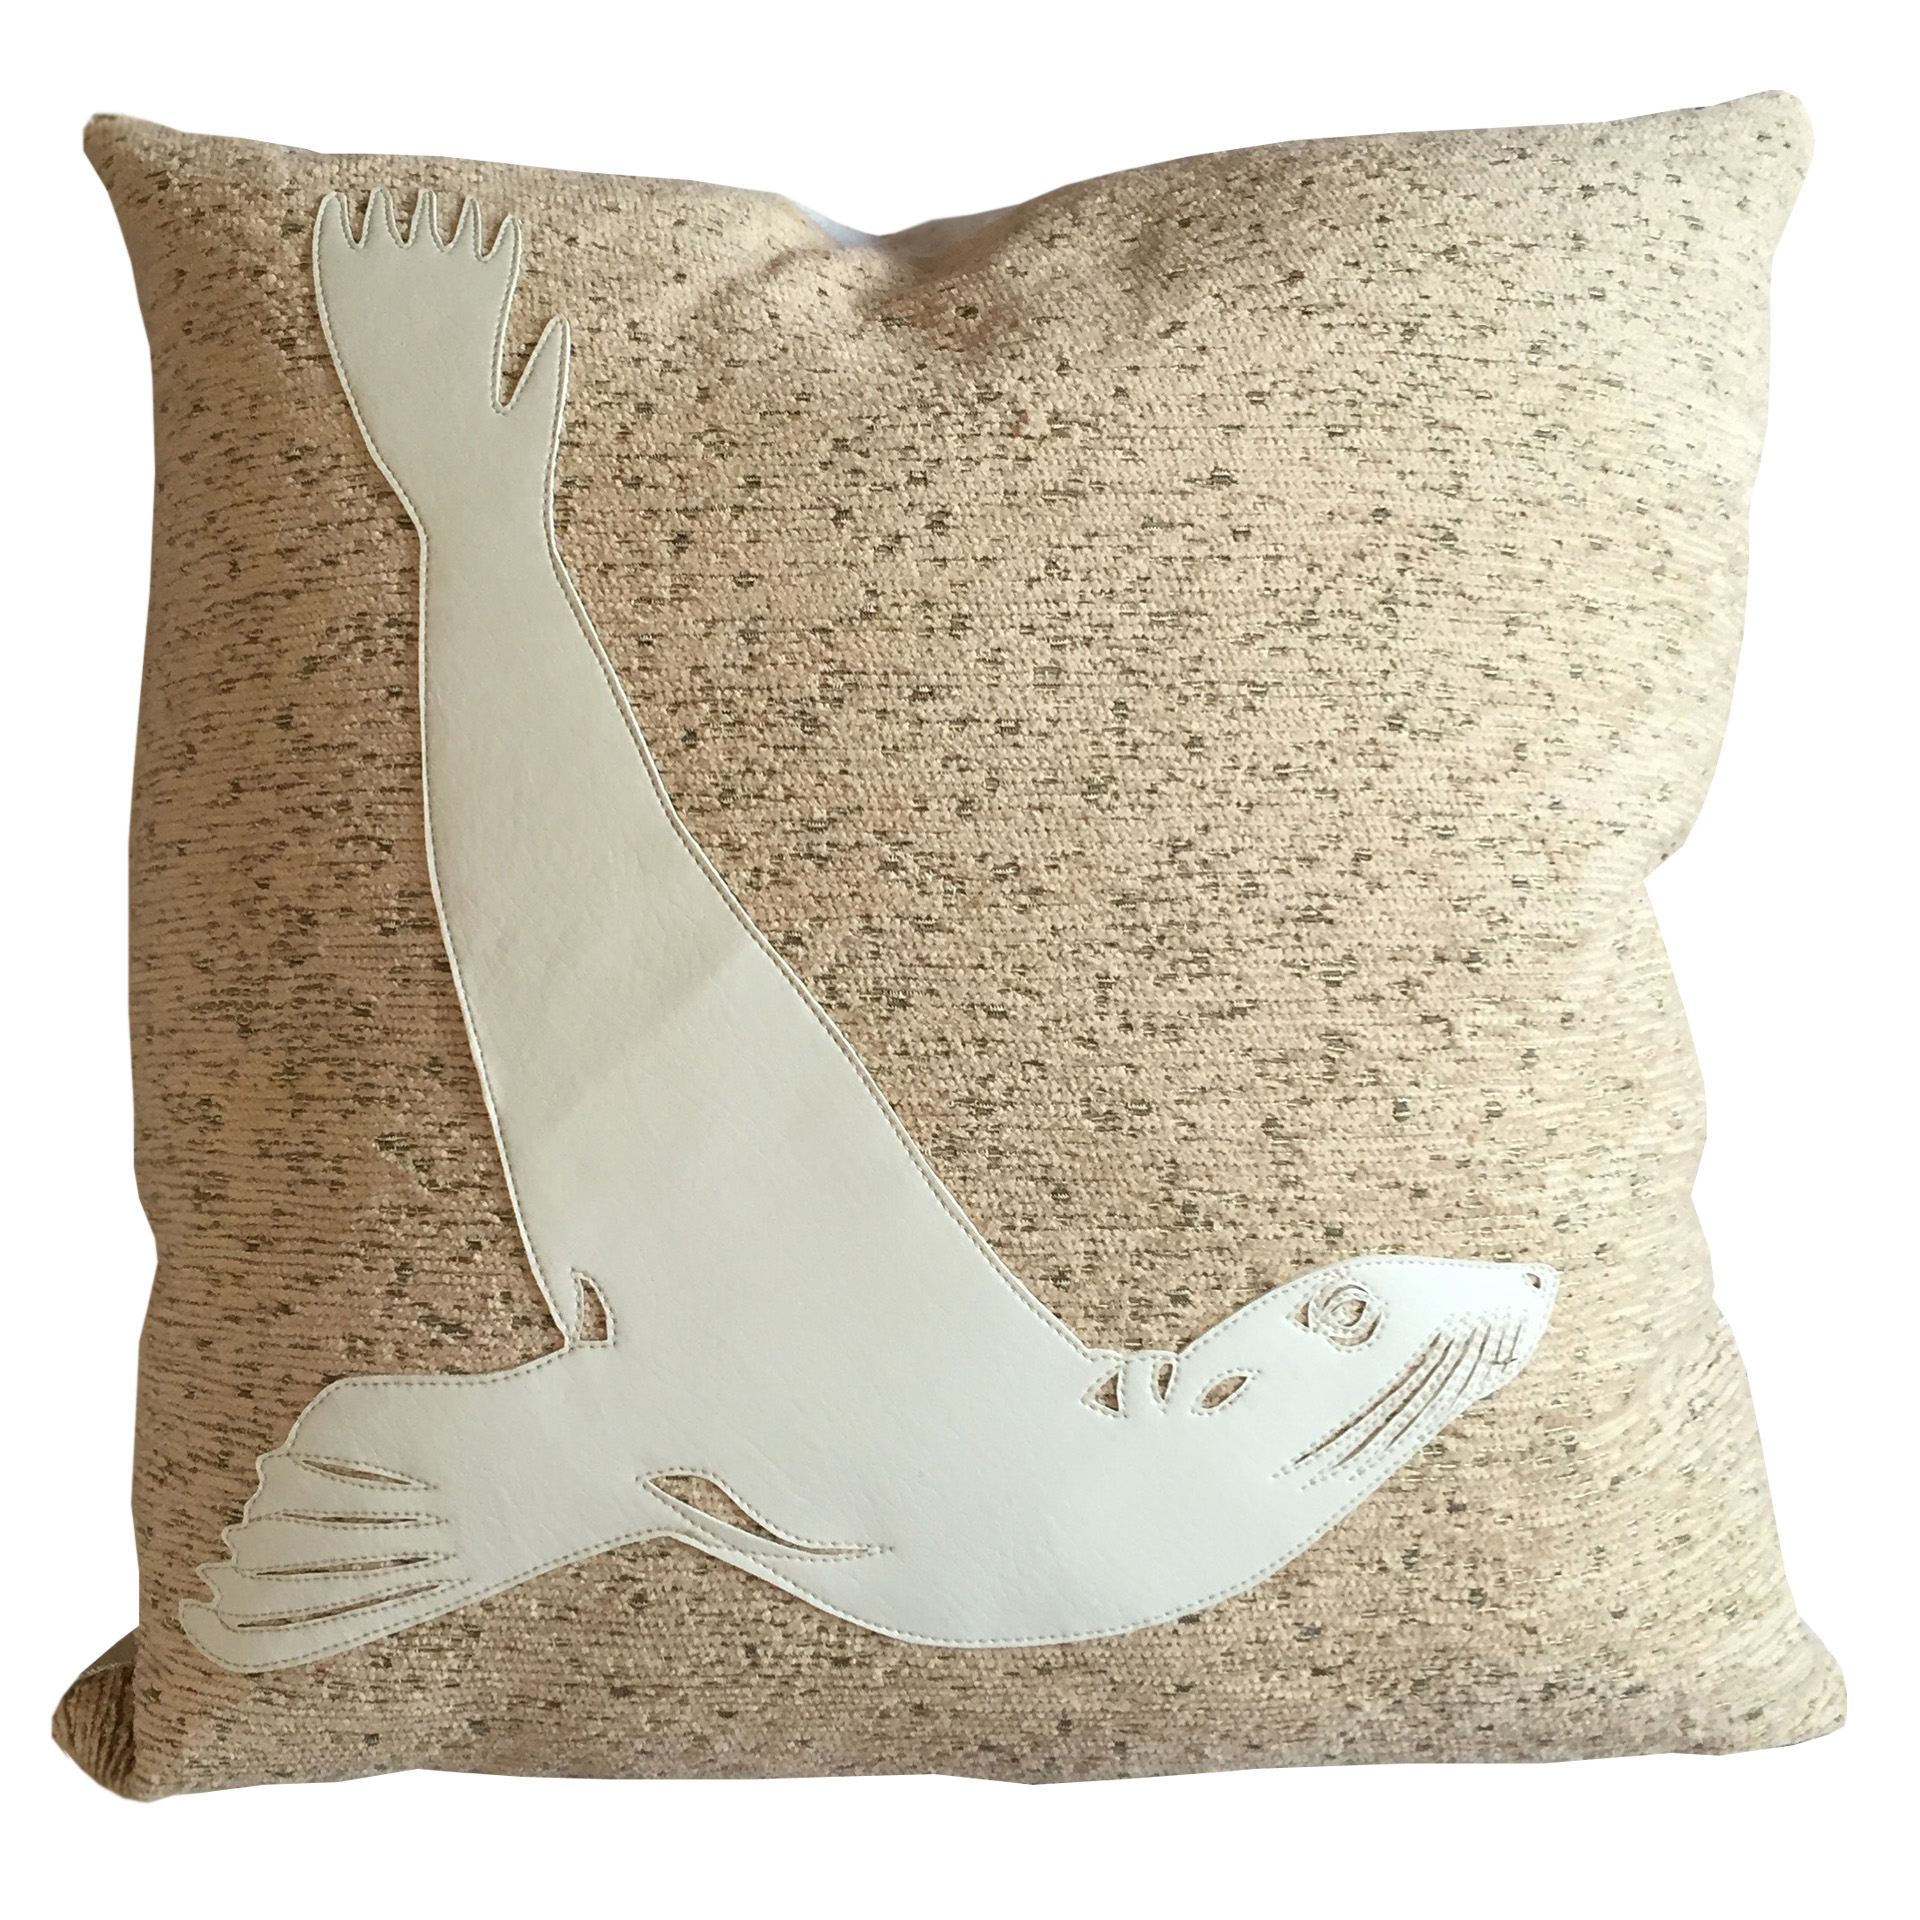 sea lion cushion 1